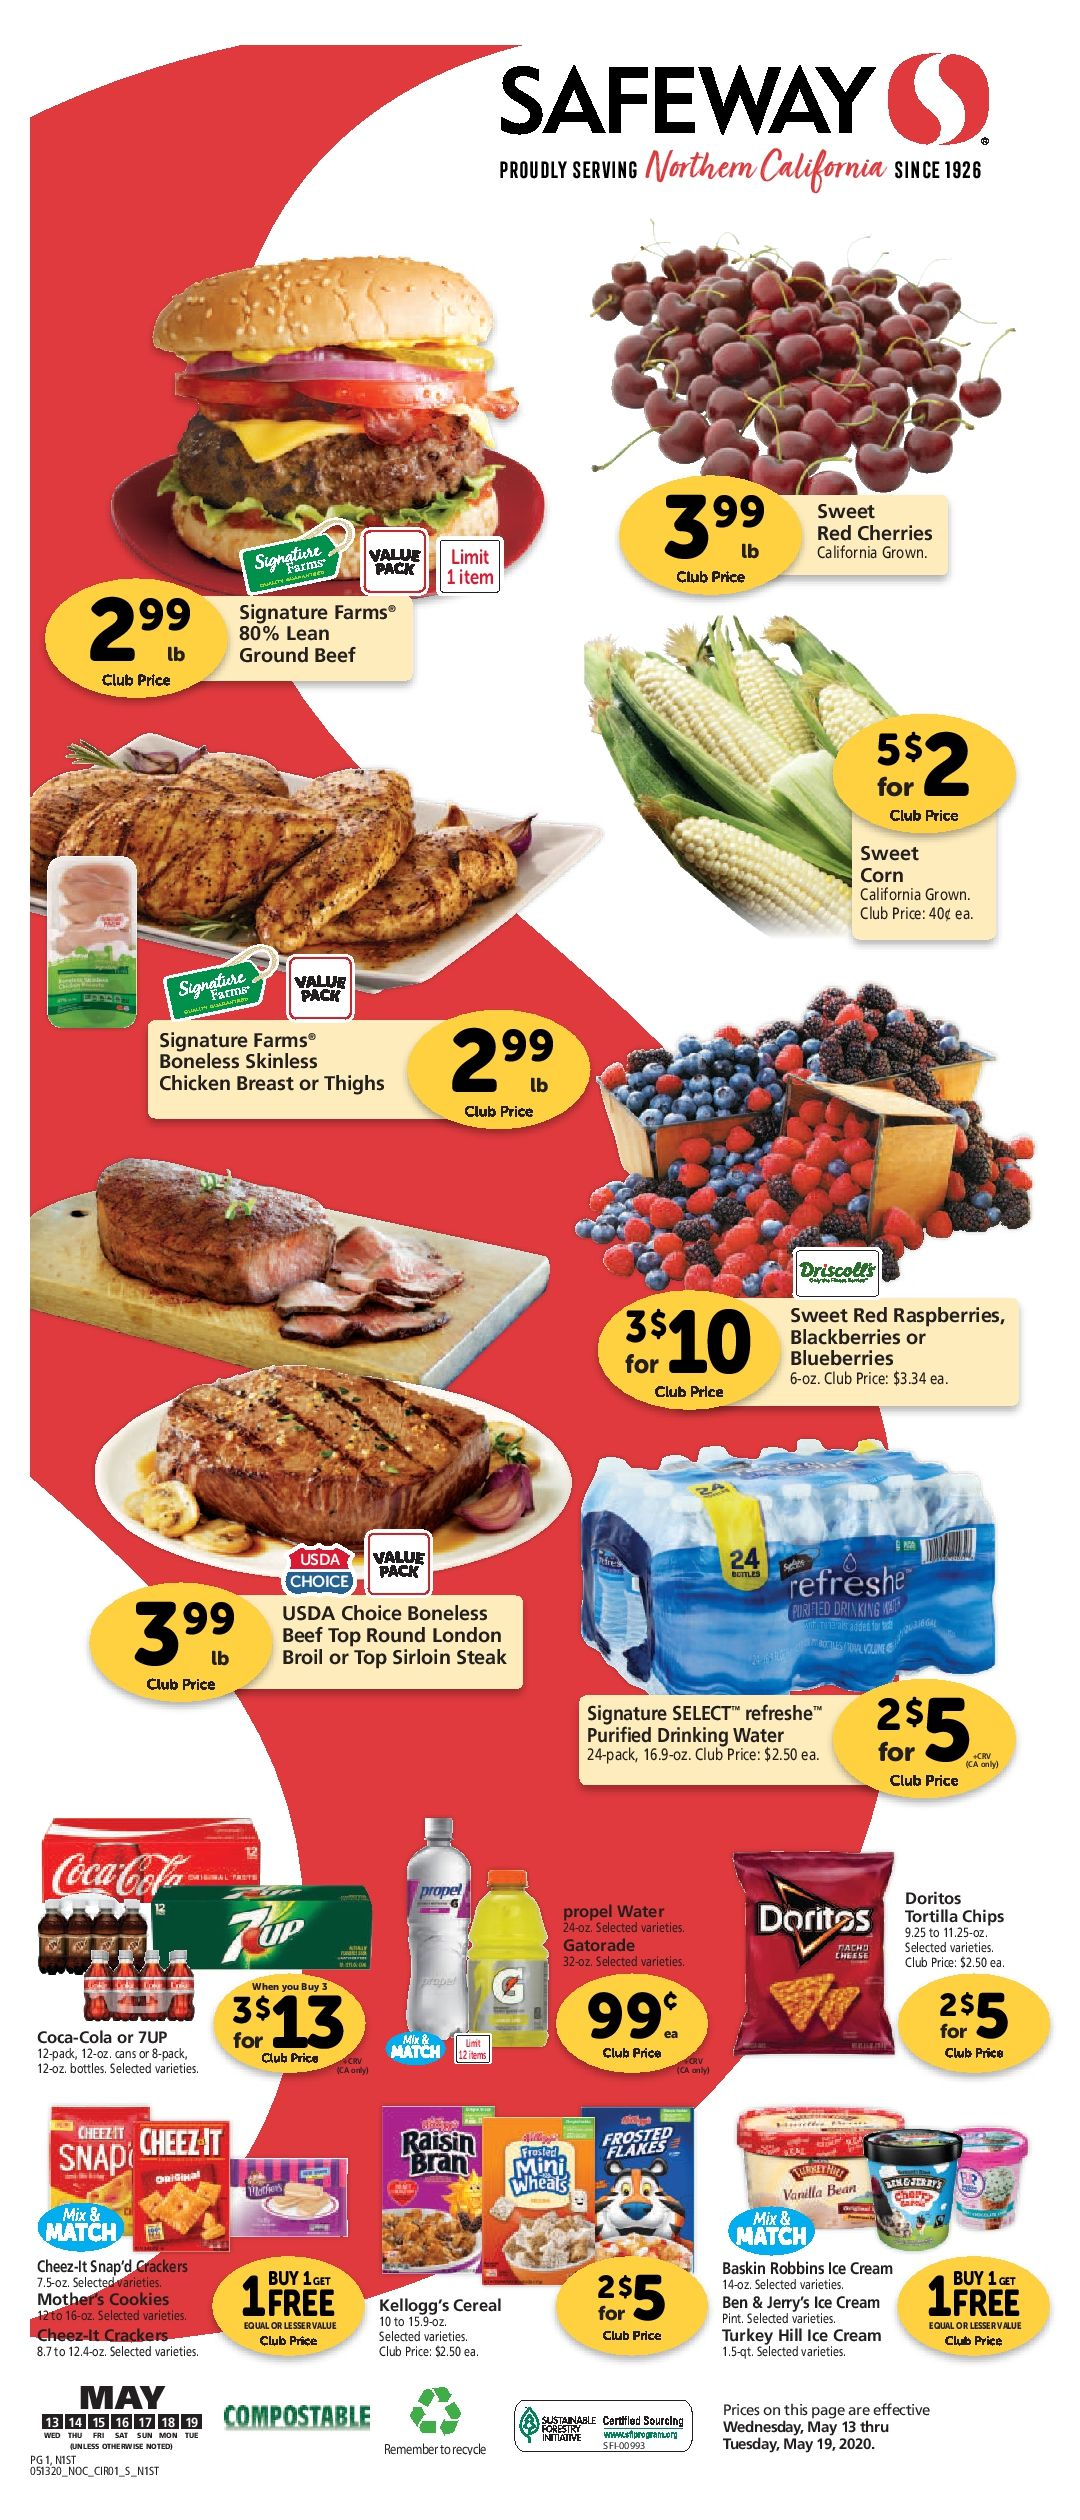 Safeway Grocery Ad 05 13 20 05 19 20 Next Week Preview In 2020 Gluten Free Wine Beef Prices Grocery Ads